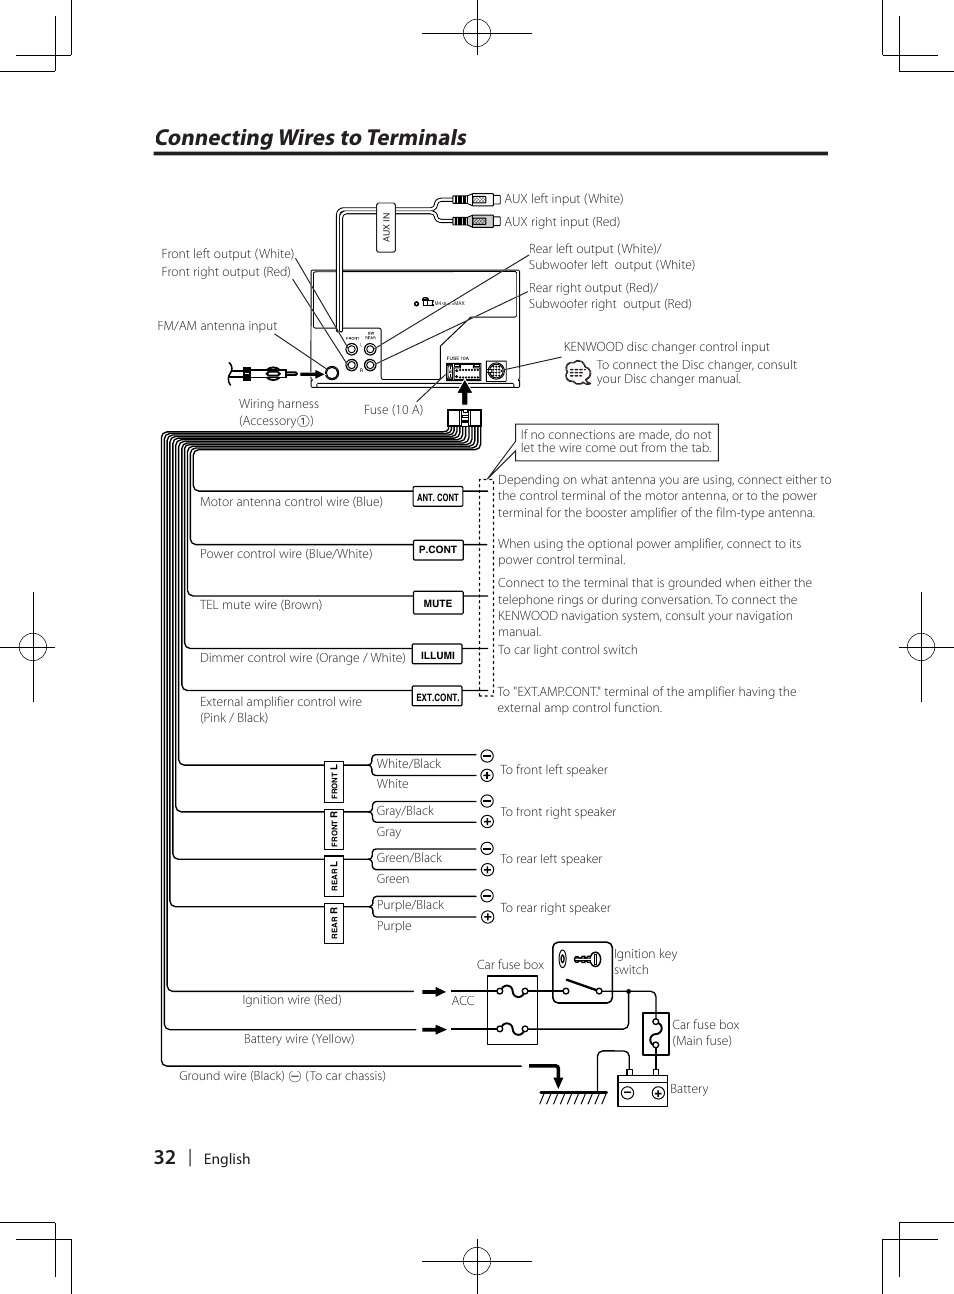 Connecting Wires To Terminals English Kenwood Dpx Mp4070 En User Booster Amplifier Wiring As Well Antenna Circuit Diagram Manual Page 32 40